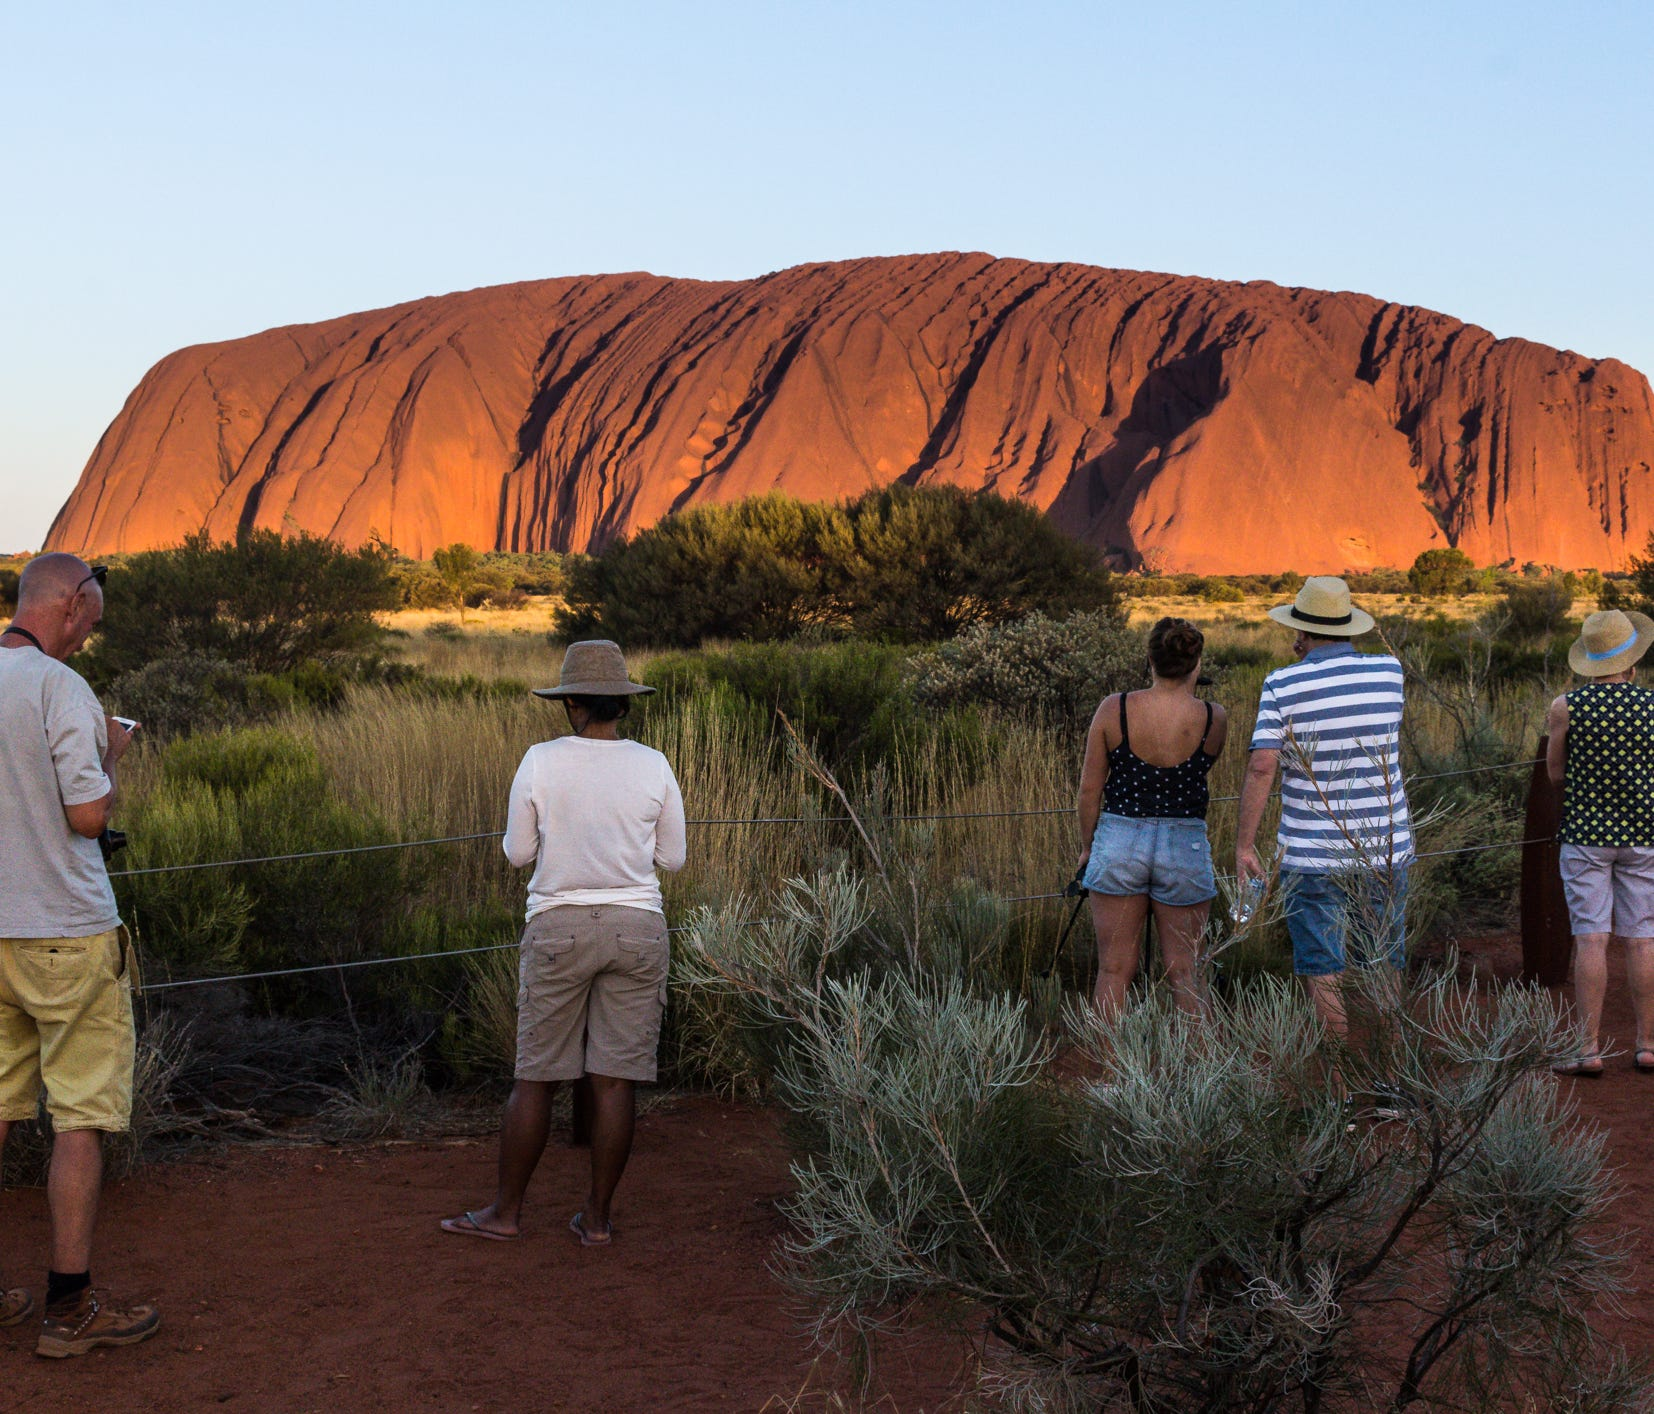 Visitors stand spellbound and transfixed by the sheer beauty of the giant rock phenomenon.